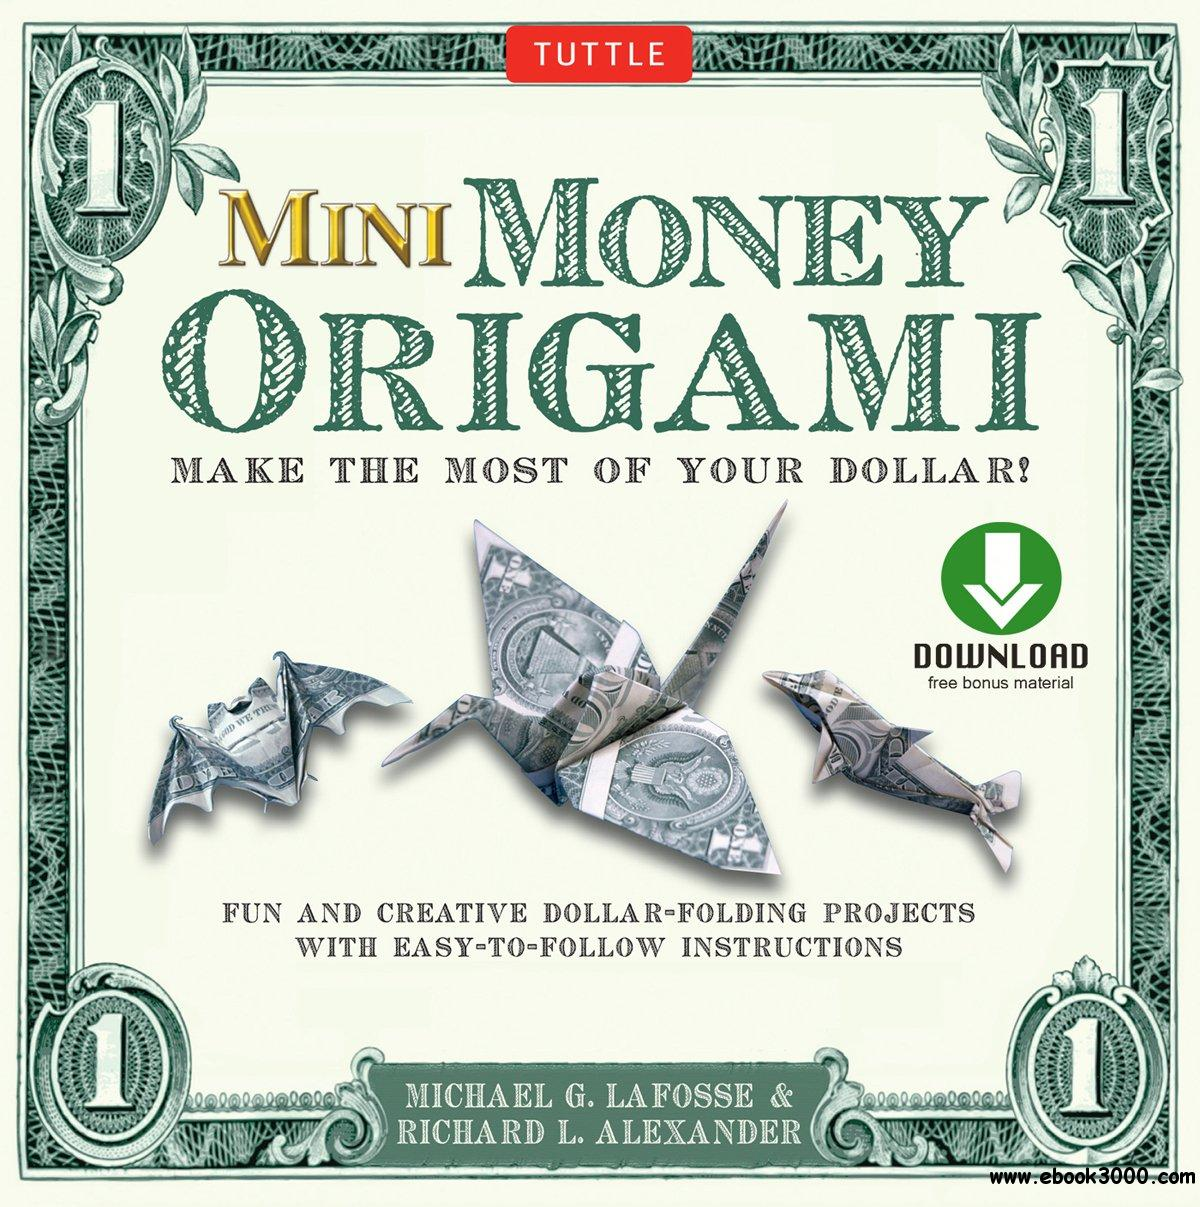 Mini Money Origami Kit: Make the Most of Your Dollar!: Origami Book with 40 Origami Paper Dollars